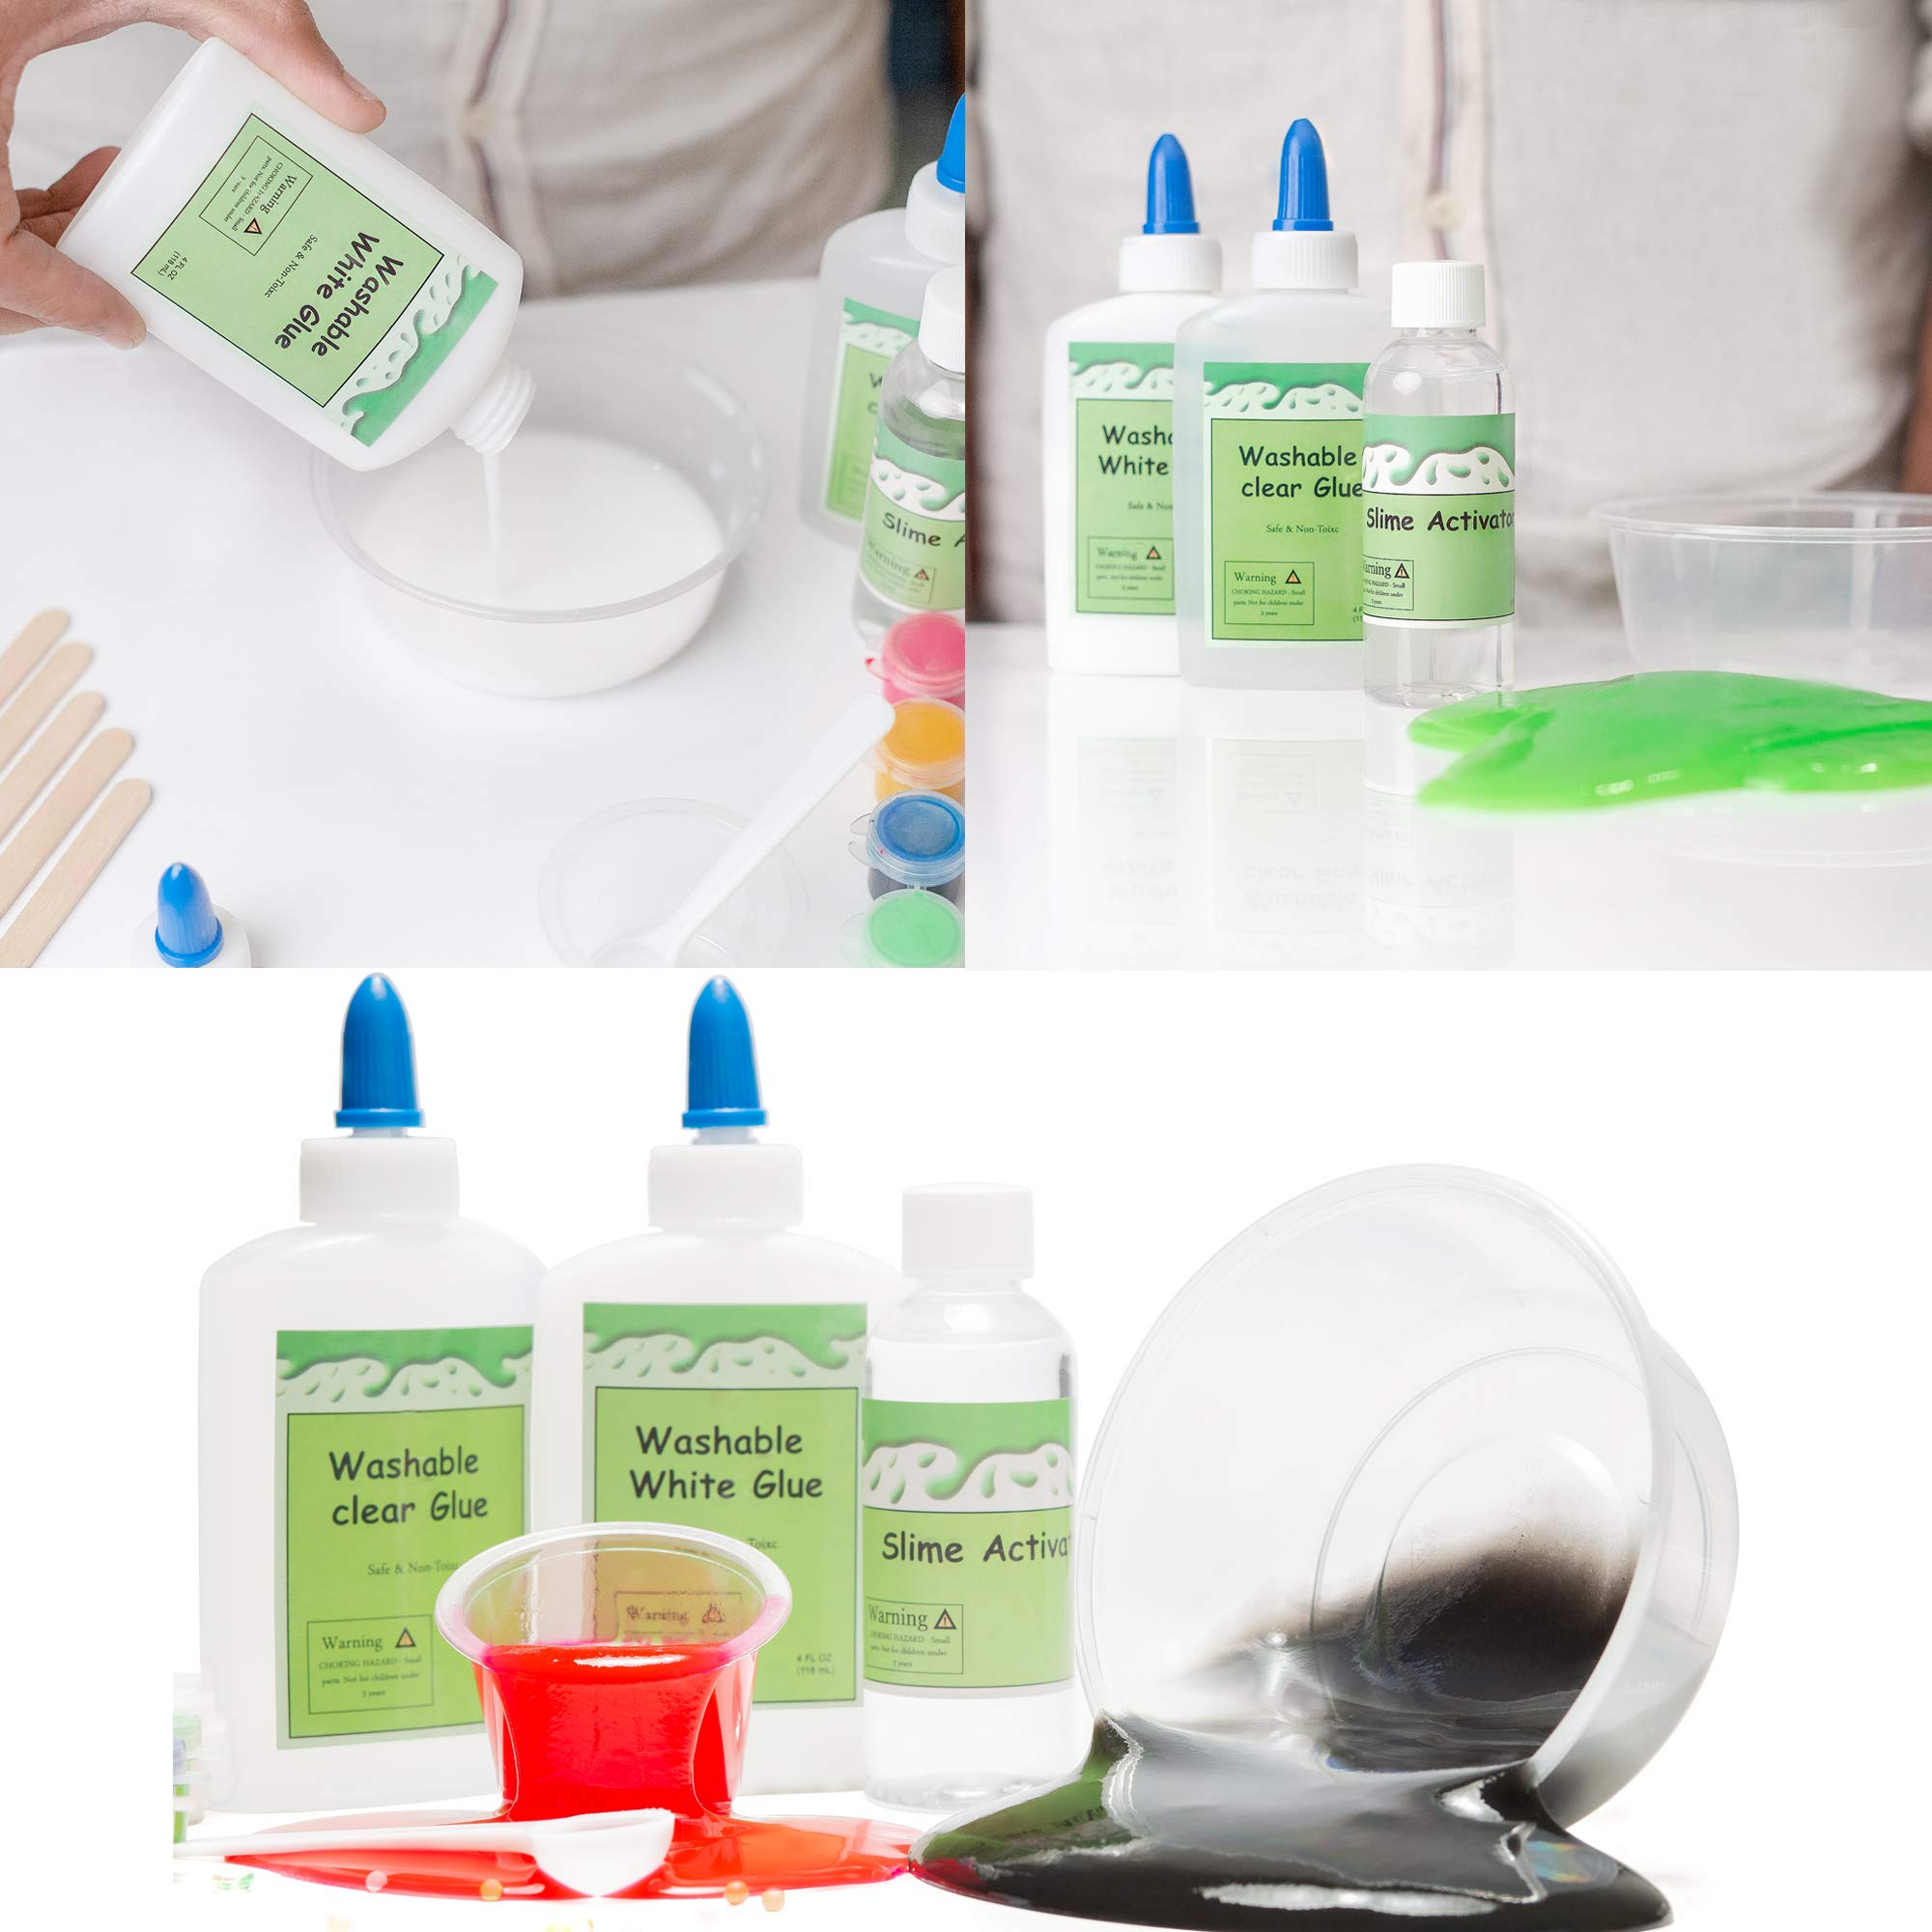 DIY Slime Kit -Learn how to make slime! Make Glow-In-The Dark, Clear, Neon and Glitter Slime - Perfect Gifting Option! Comes With Easy To Make Recipes! Super Slime Making Kit for Boys & Girls! by InStyleCraft (Image #3)